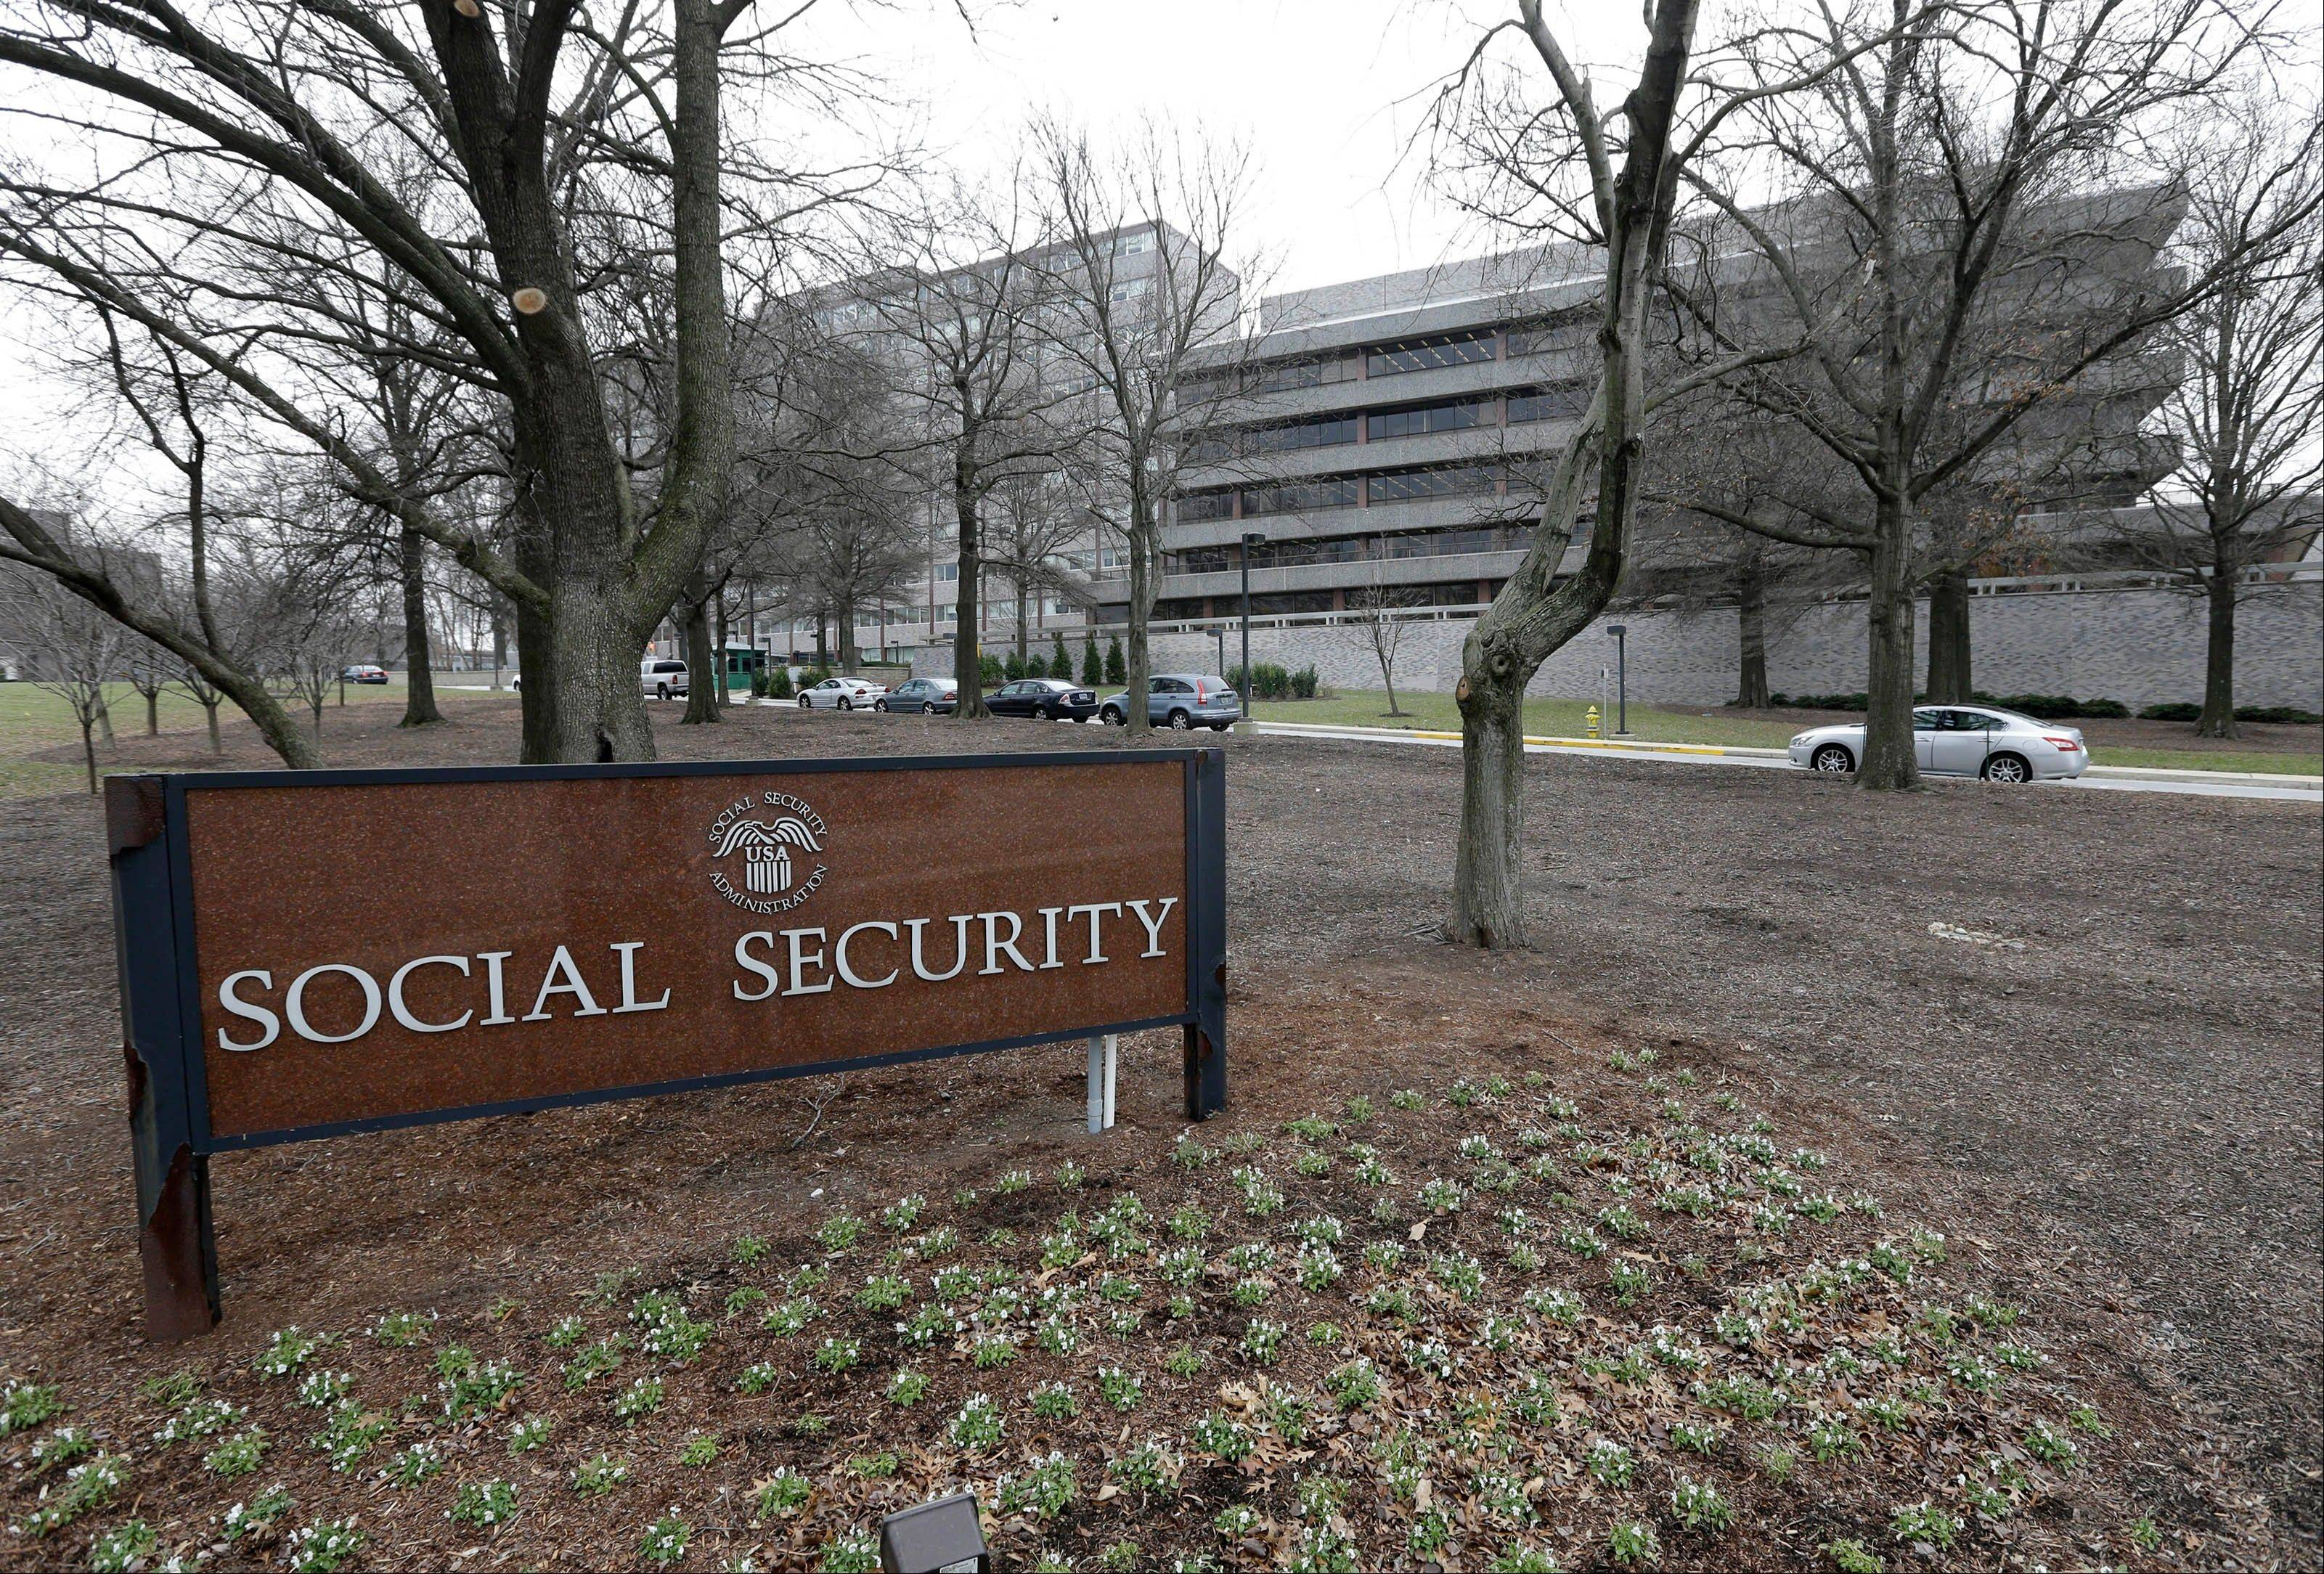 The Social Security Administration's main campus in Woodlawn, Md.